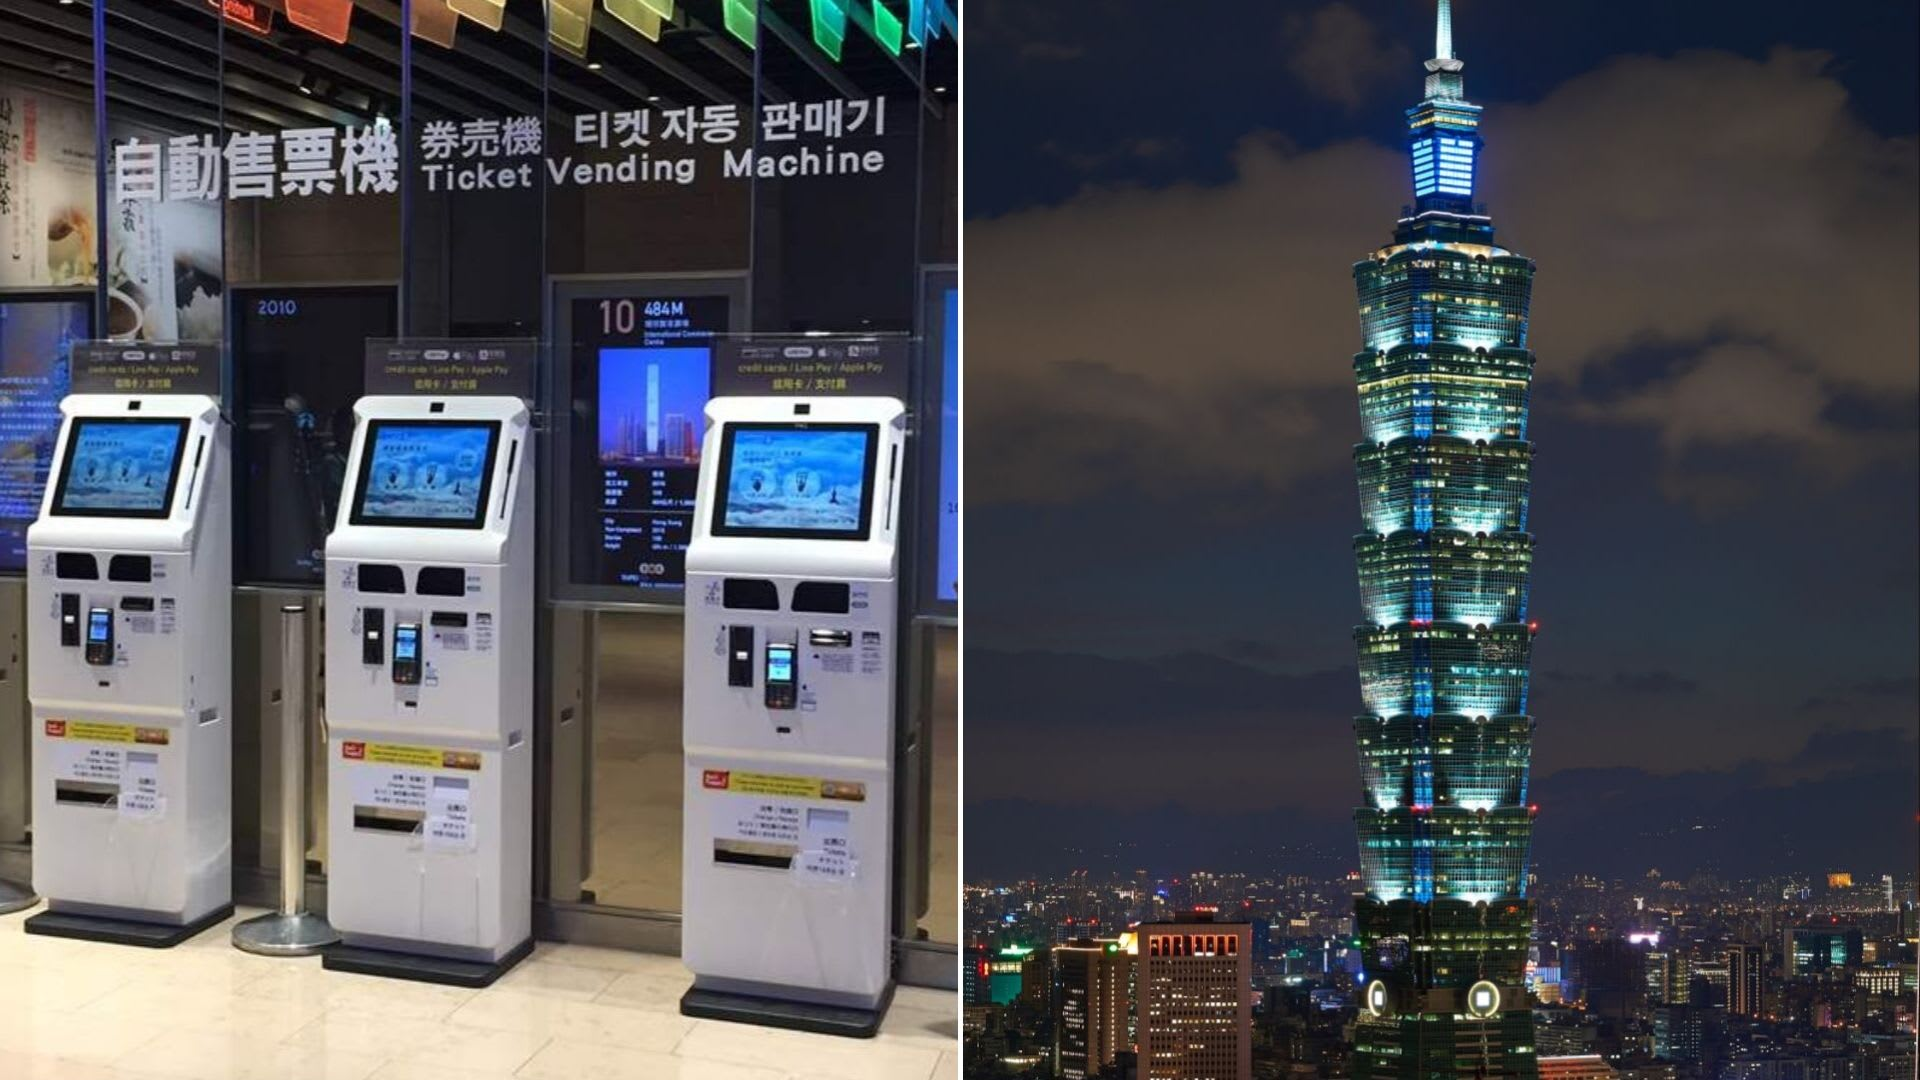 taipei 101 tickets